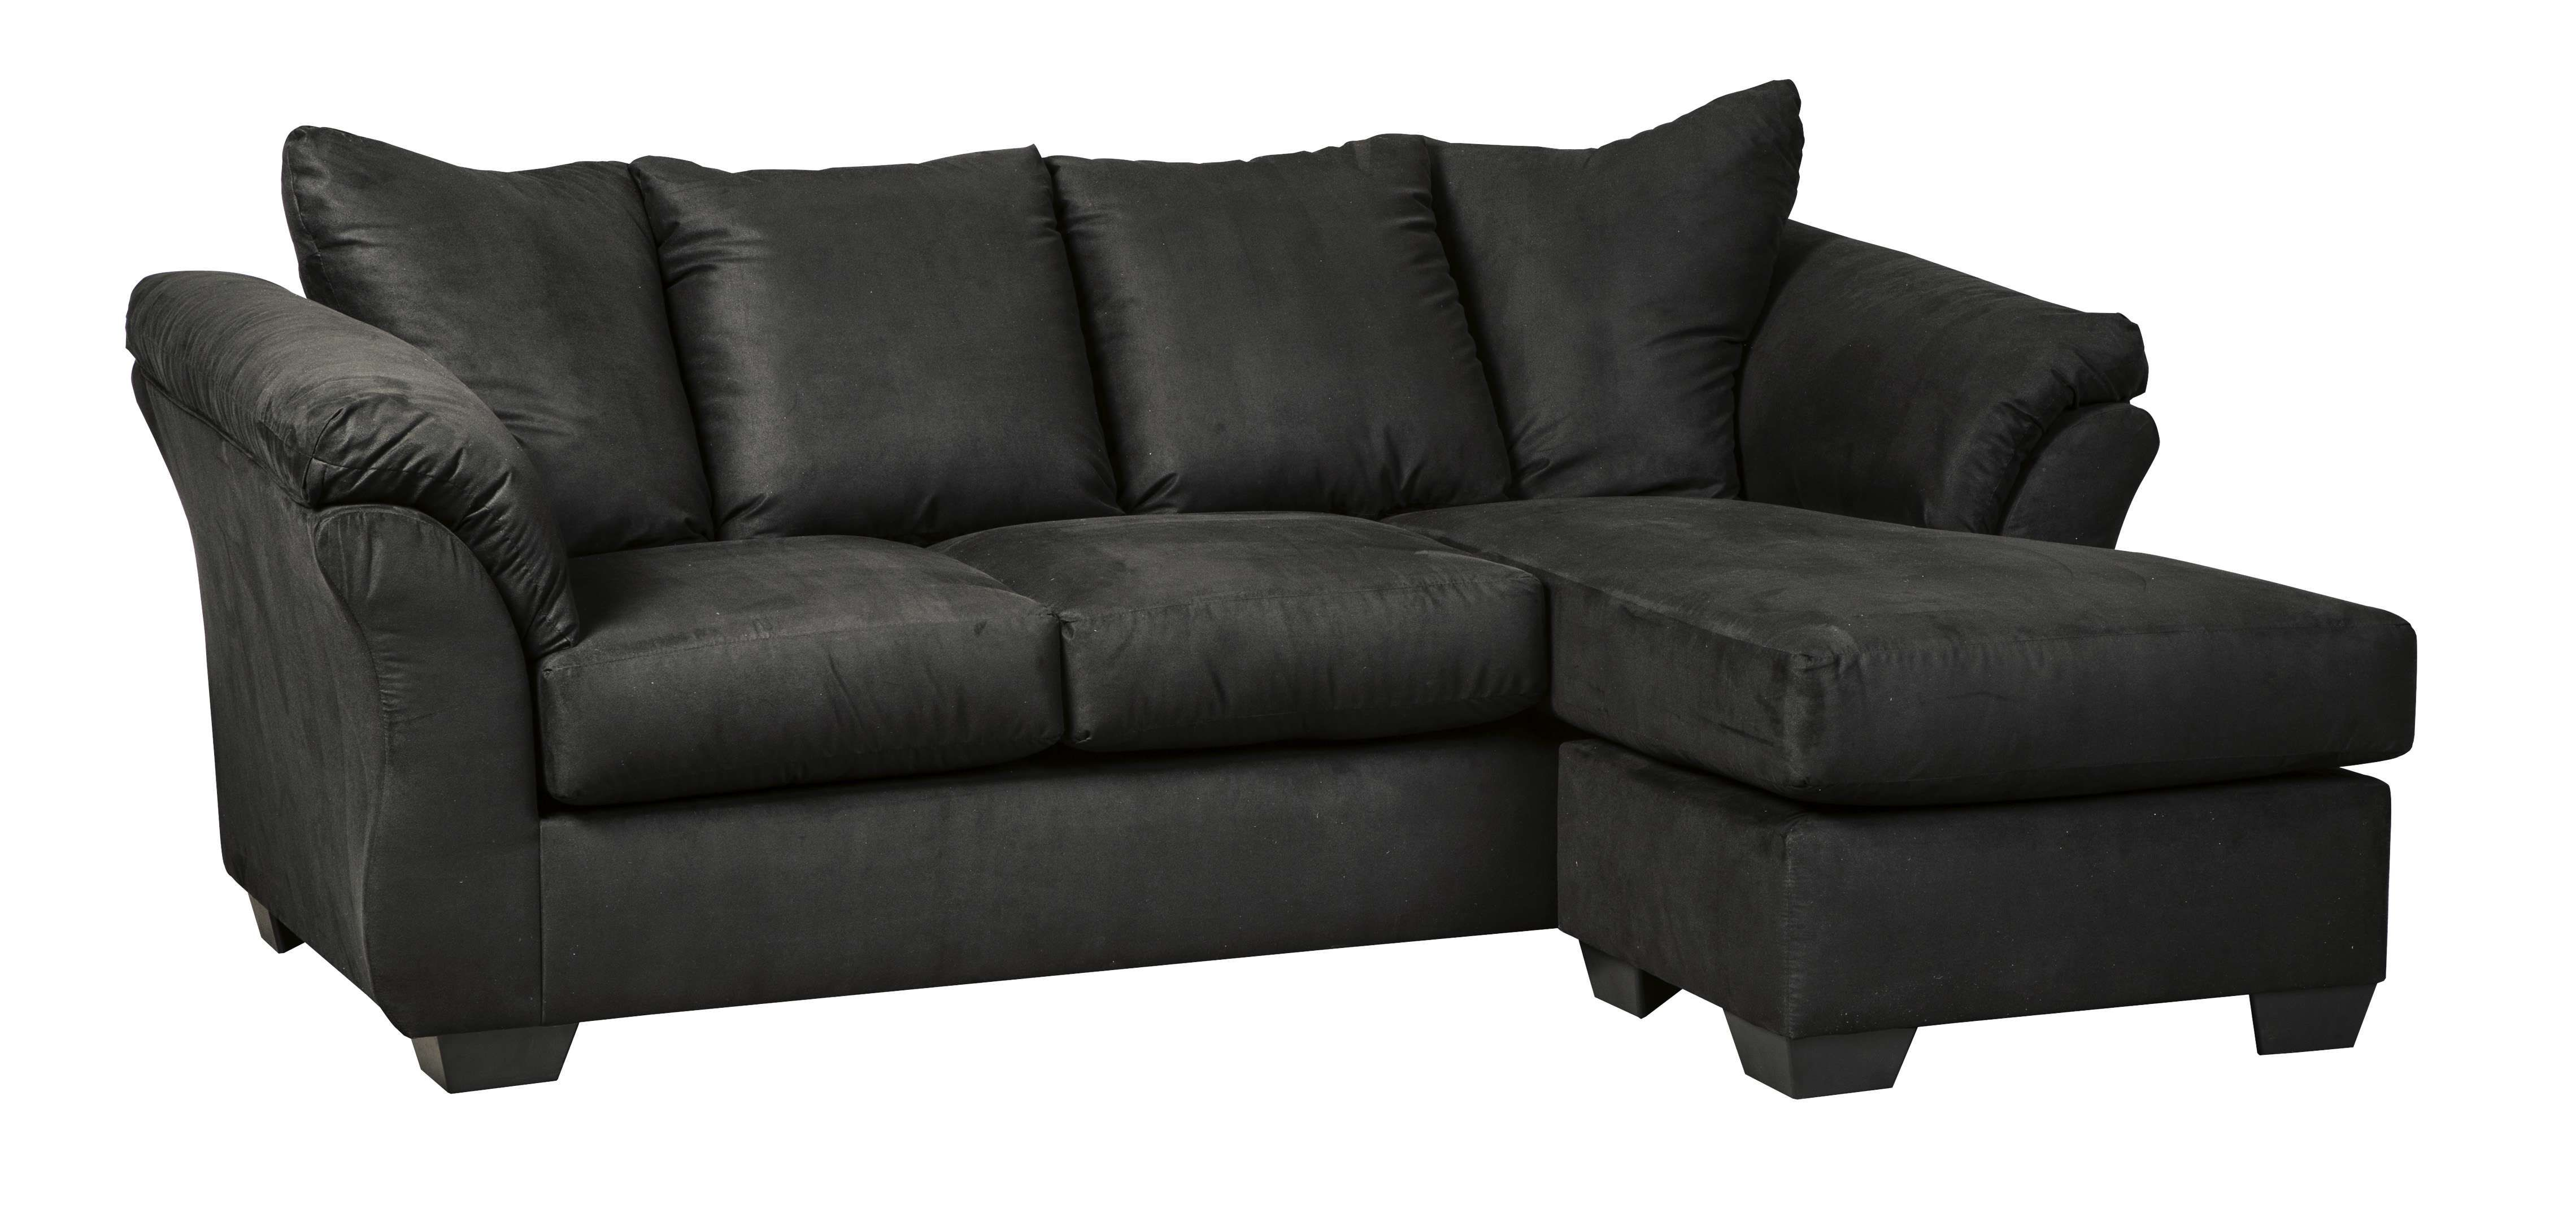 Signature Design By Ashley Darcy Black Sofa Chaise Reviews